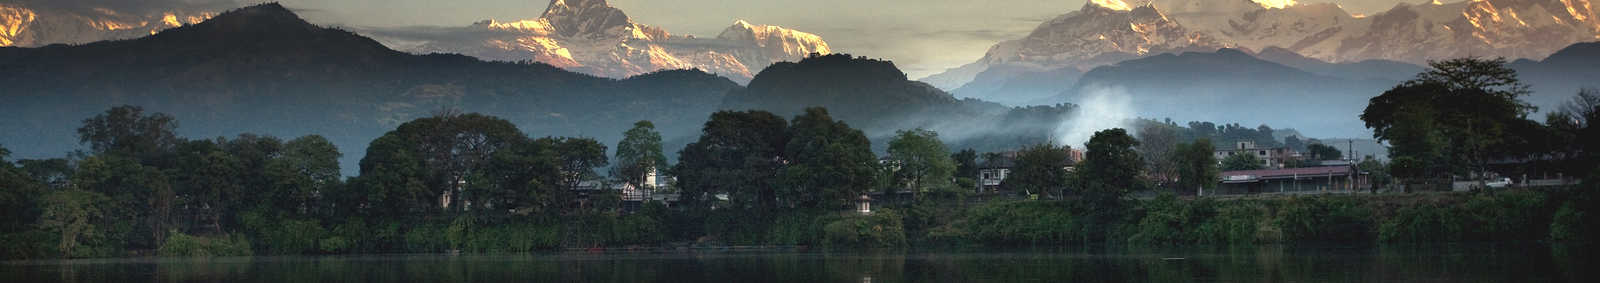 Pokhara, with the Annapurnas reflected, Nepal